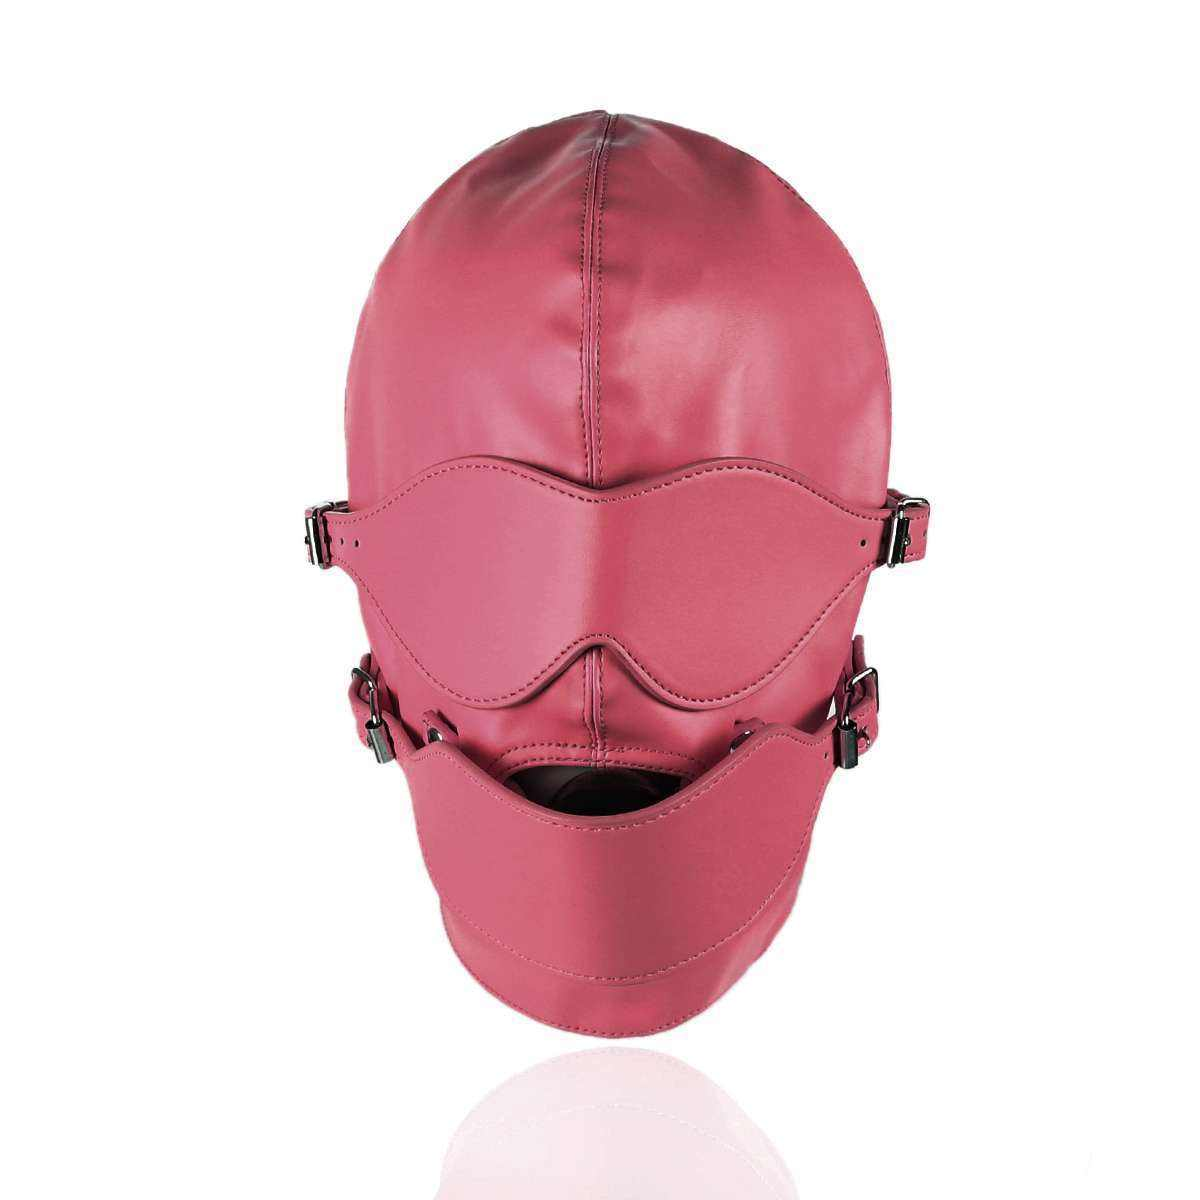 Ninghao Leather Headgear Full Face Bondage with Ball Gag Mouth Hood Sex Harness